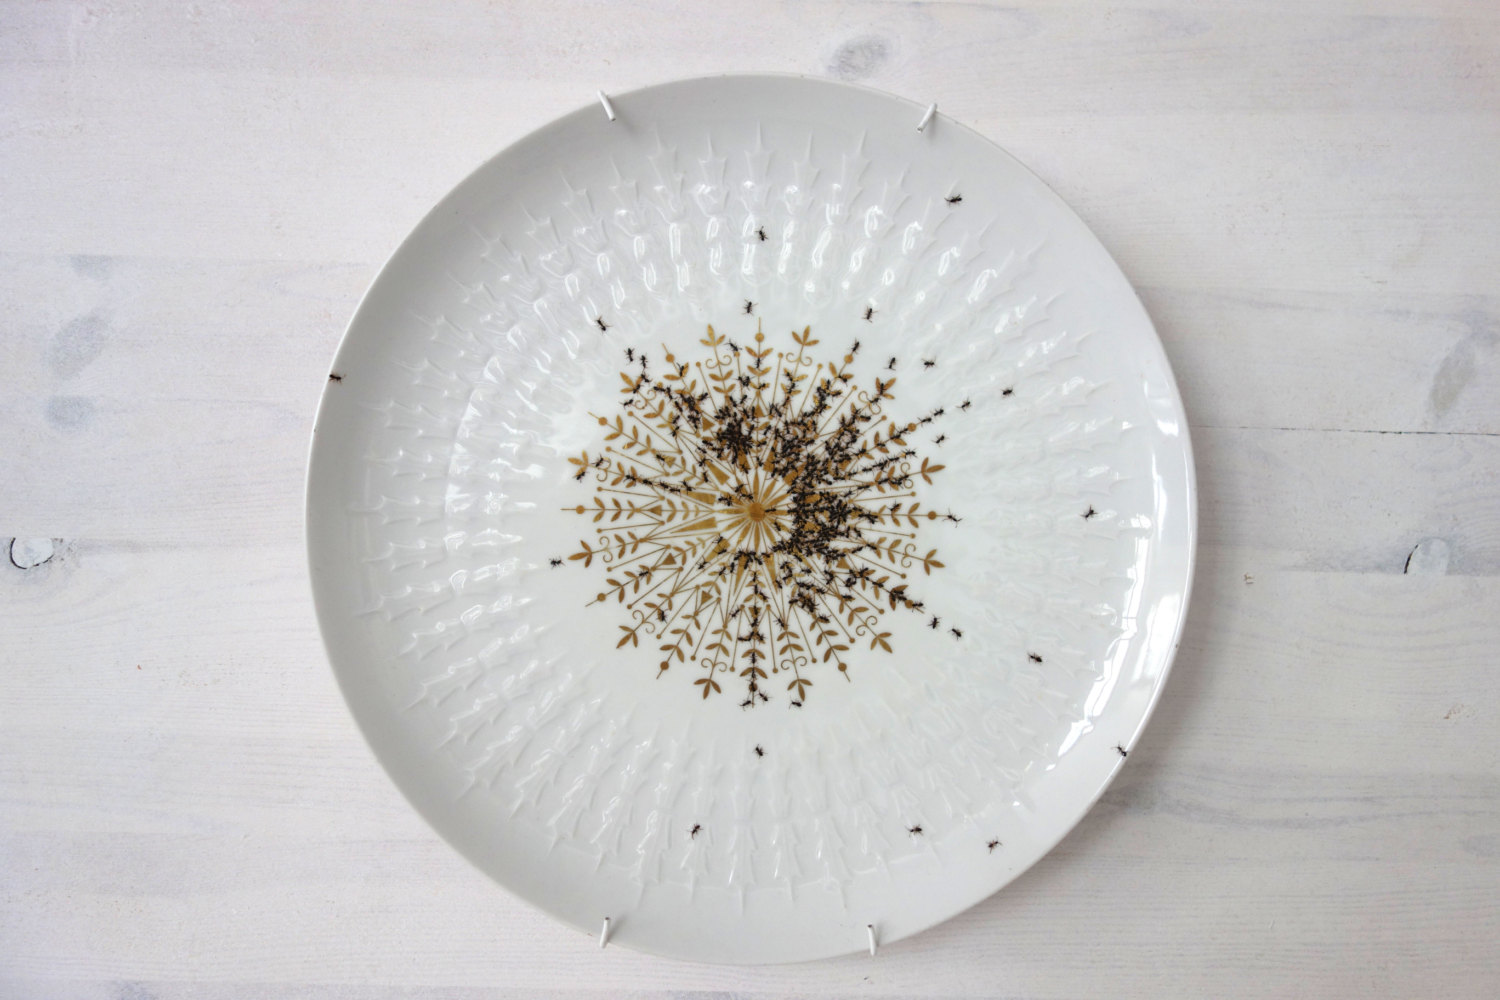 Vintage Porcelain Dishes Covered in Hordes of Hand-Painted Ants